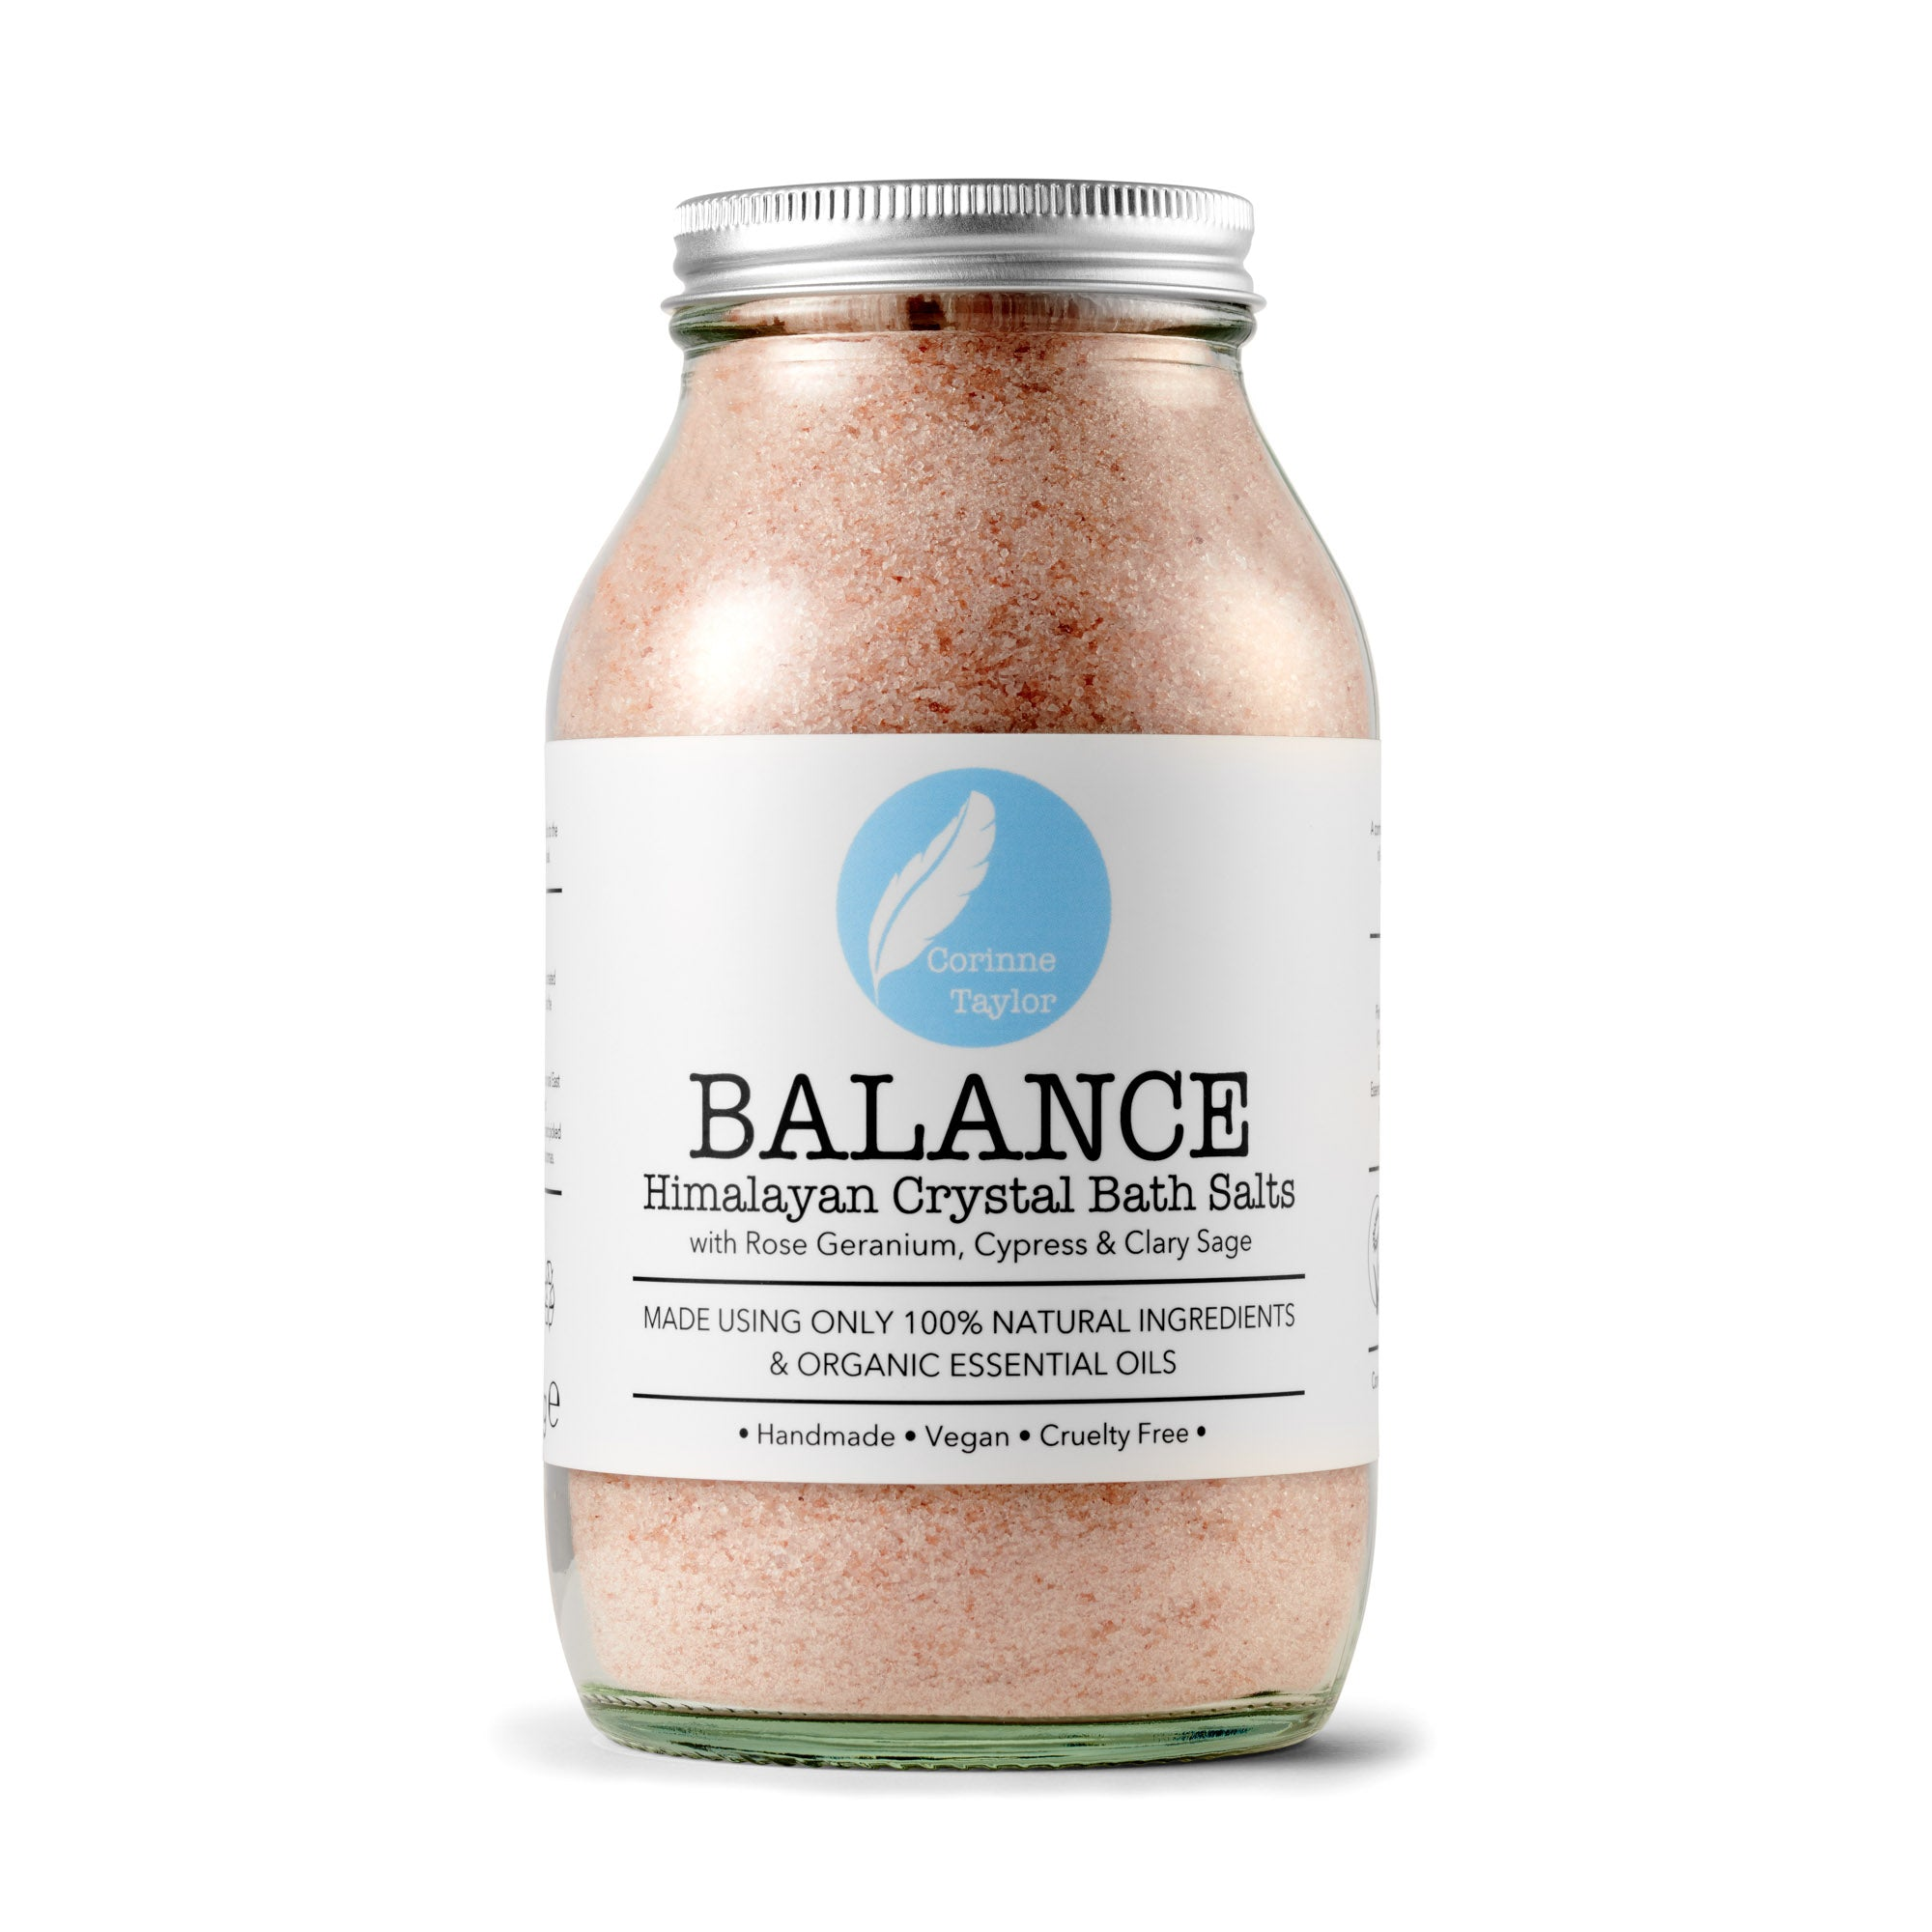 Balance Himalayan Bath Salts by Corinne Taylor. 100% natural, vegan, cruelty free, plant based. With organic Rose Geranium, Clary Sage and Cypress essential oils.